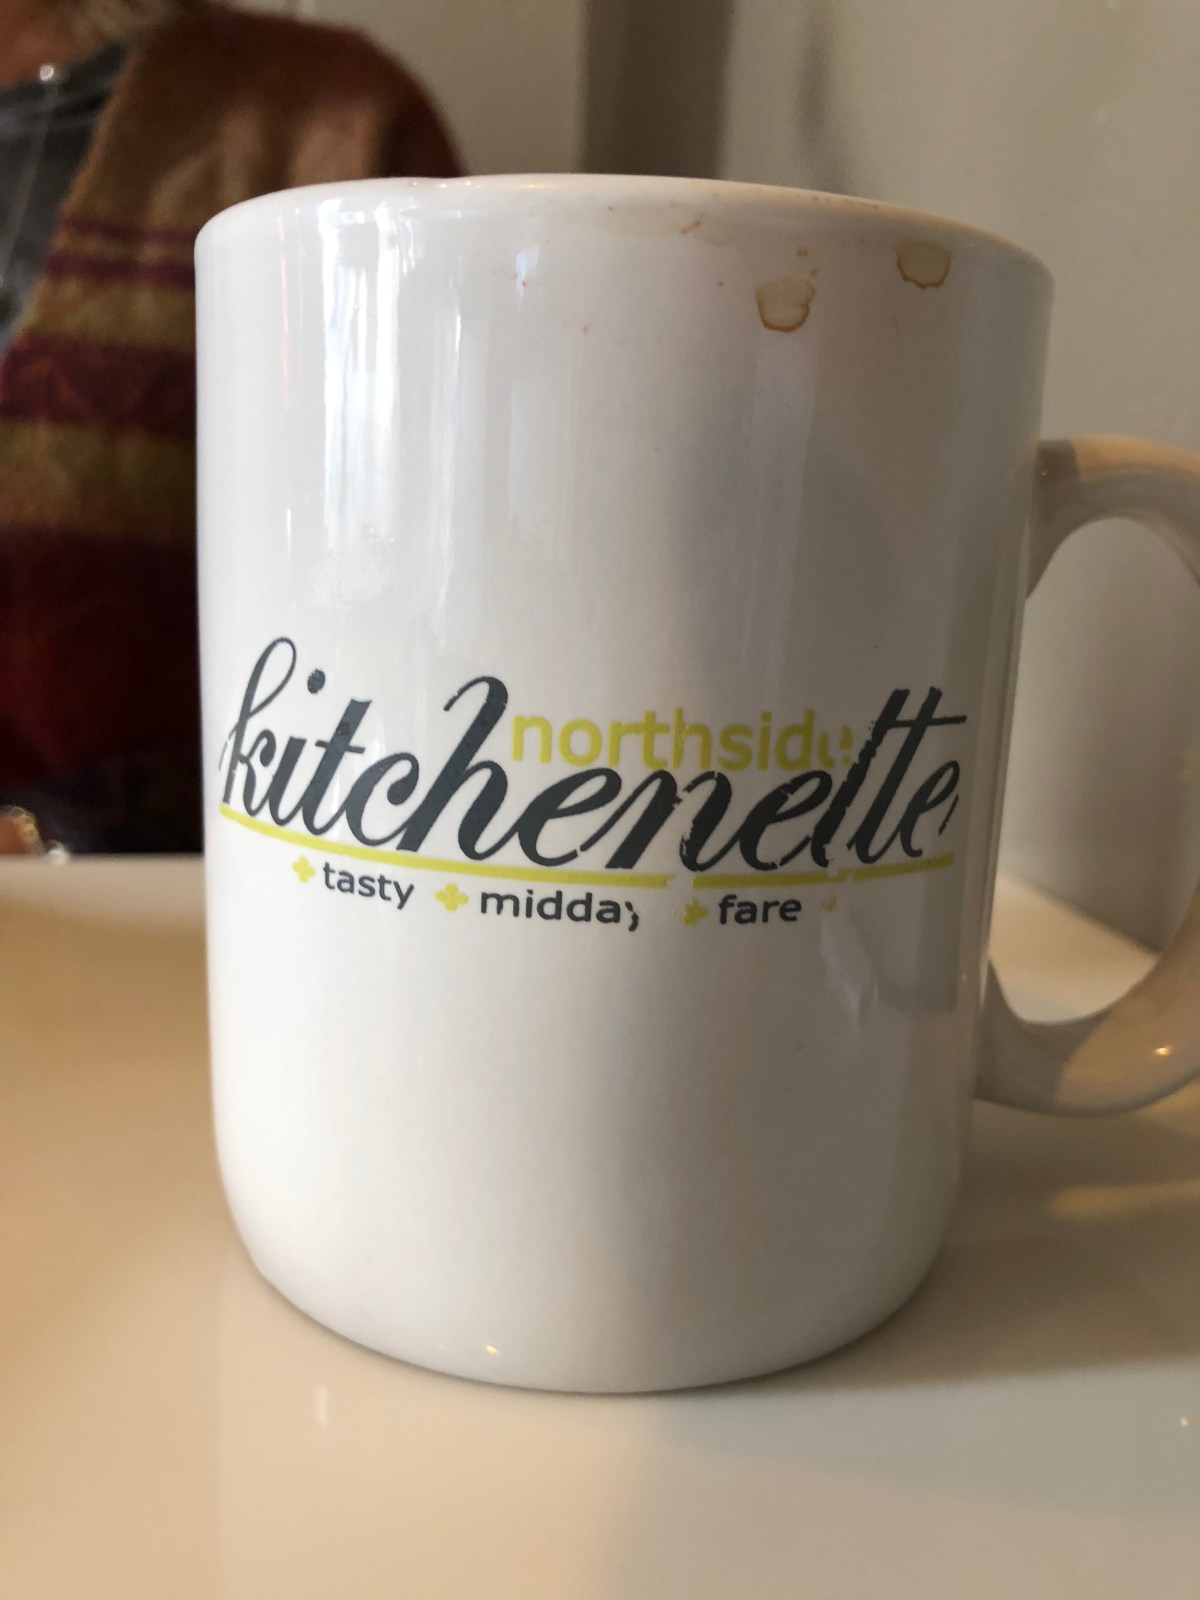 Indy – Northside Kitchenette